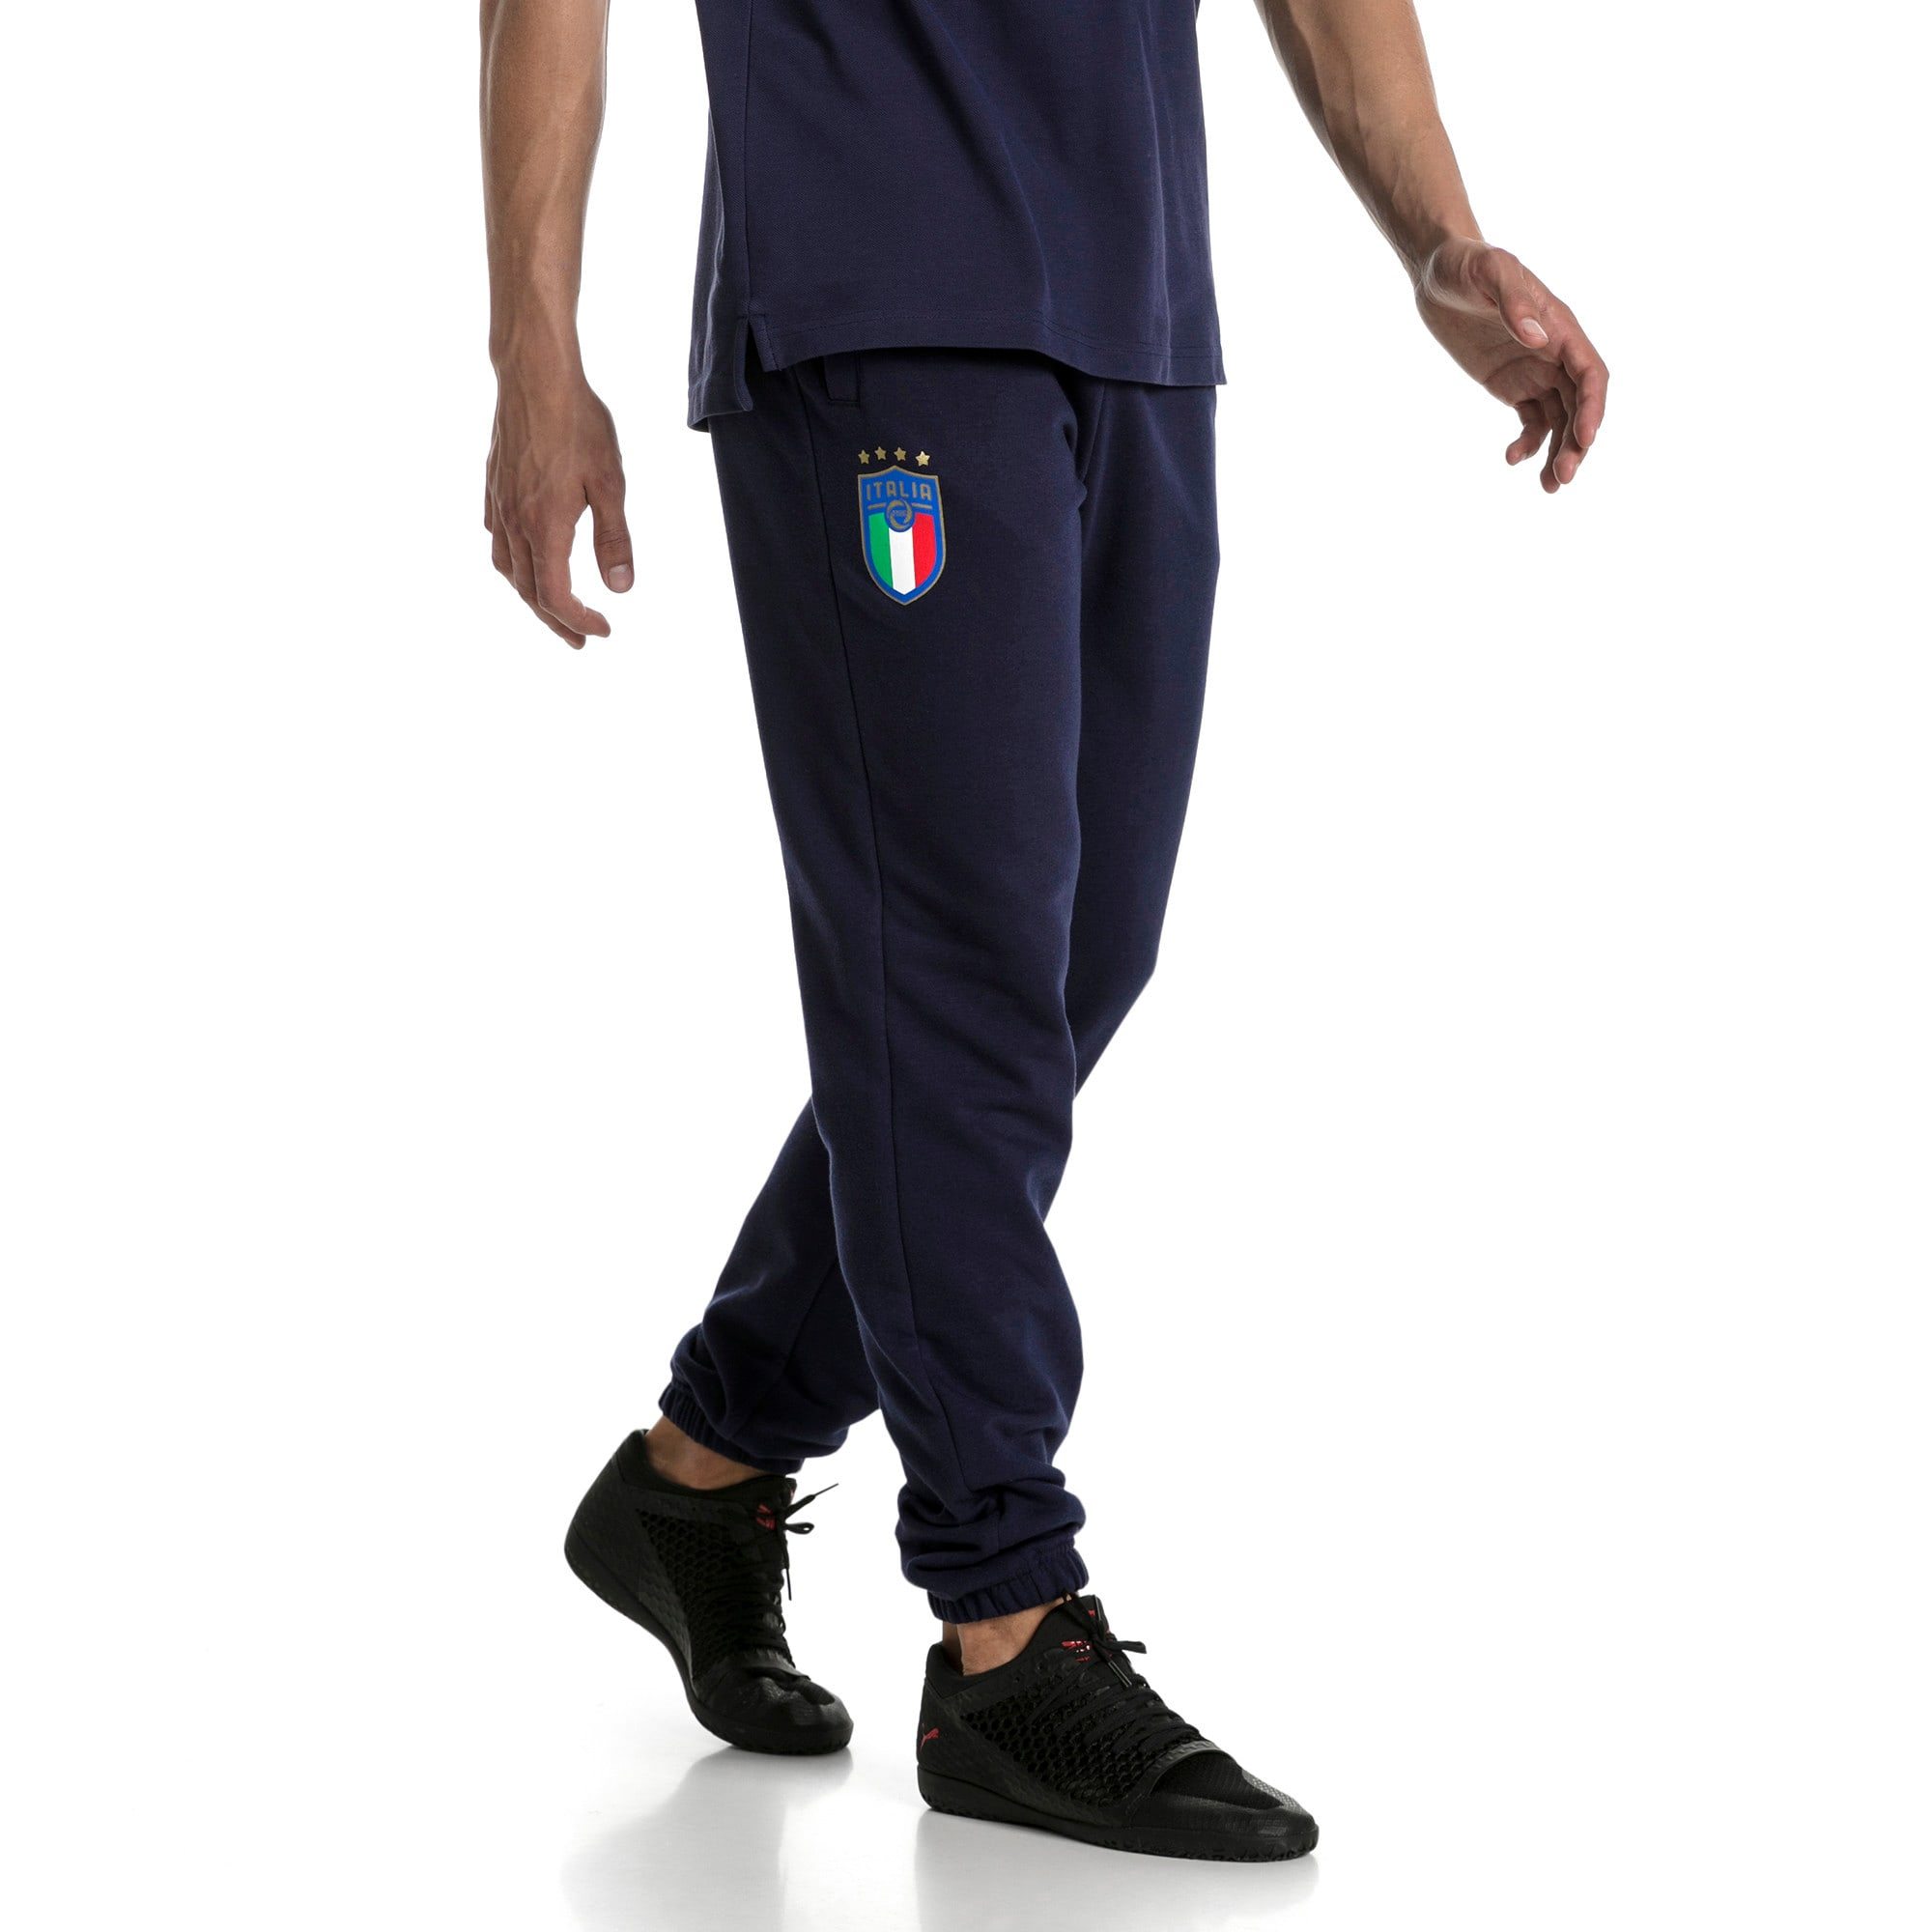 Thumbnail 2 of FIGC Men's Italia Sweat Pants, Peacoat, medium